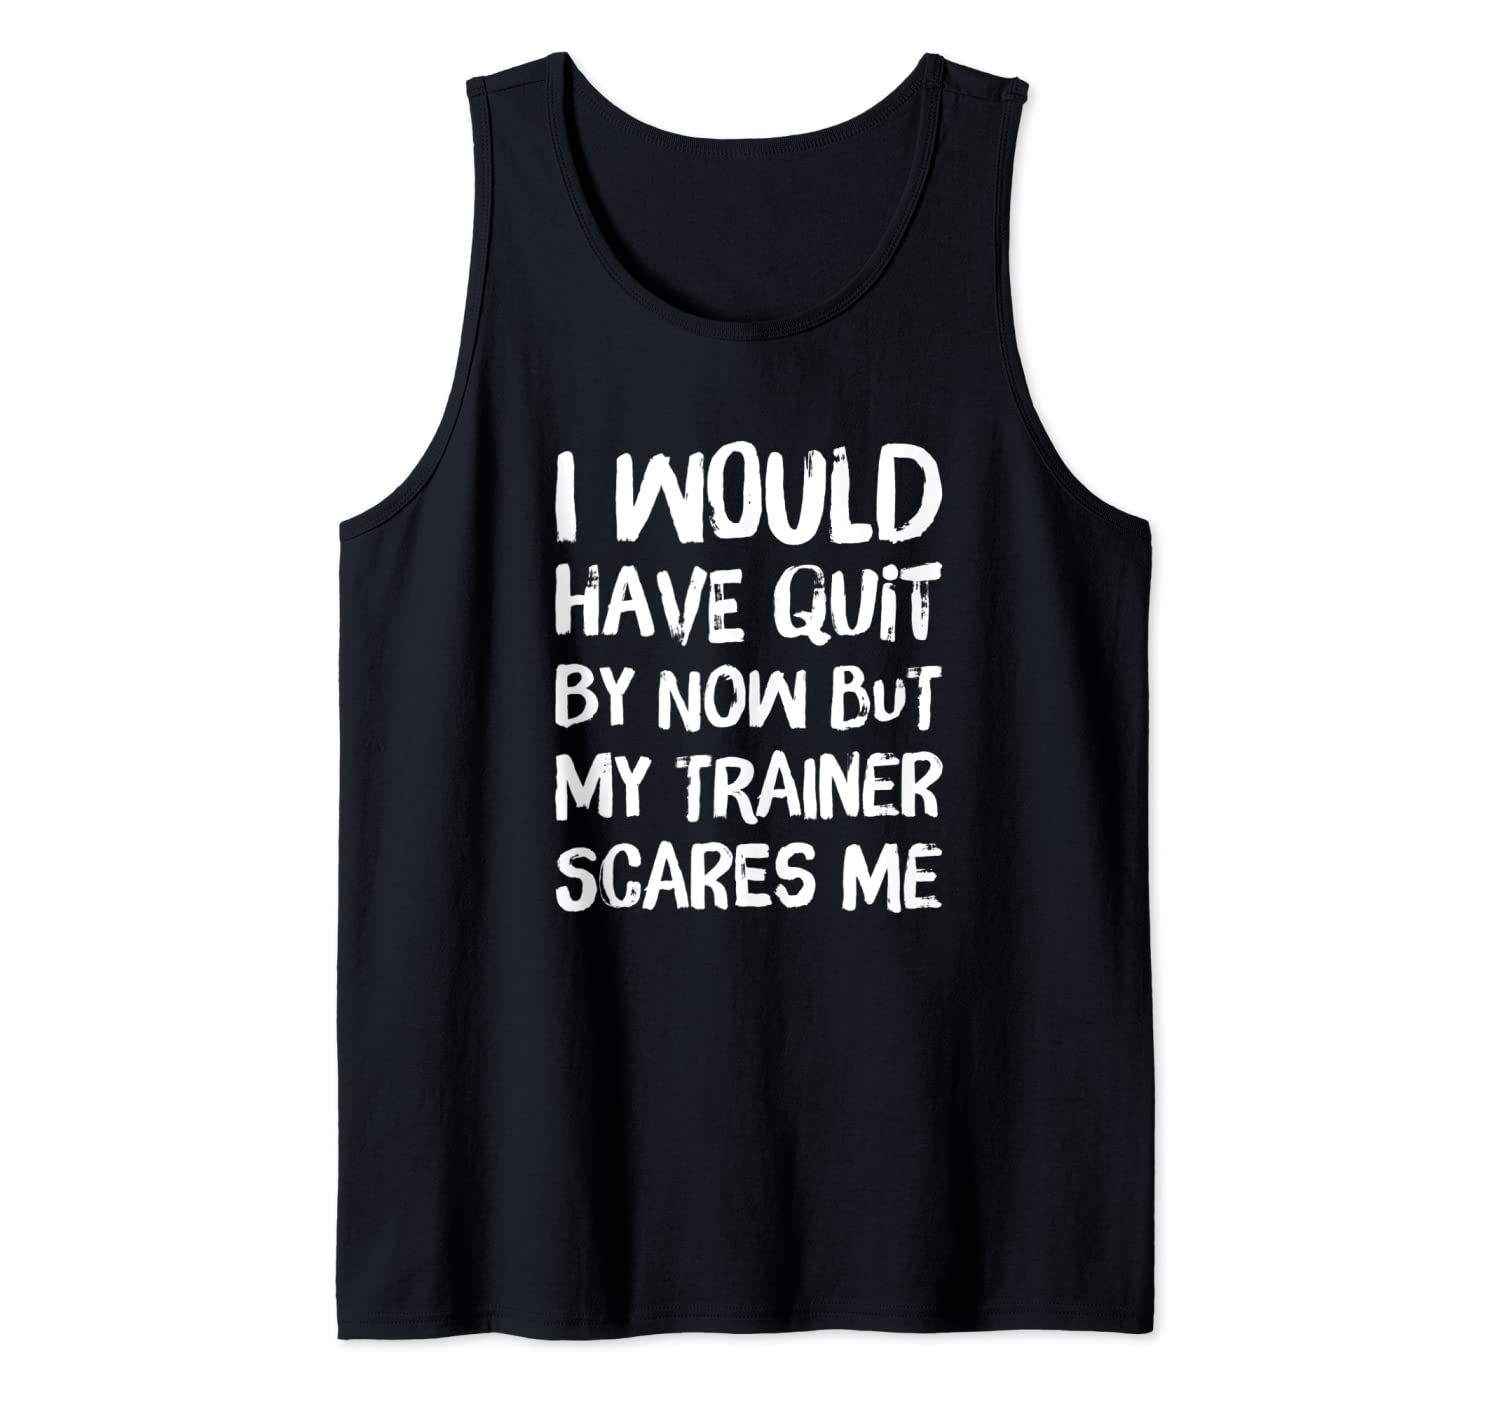 Would Have Quit But Trainer Scares Me Funny Workout Saying Tank Top